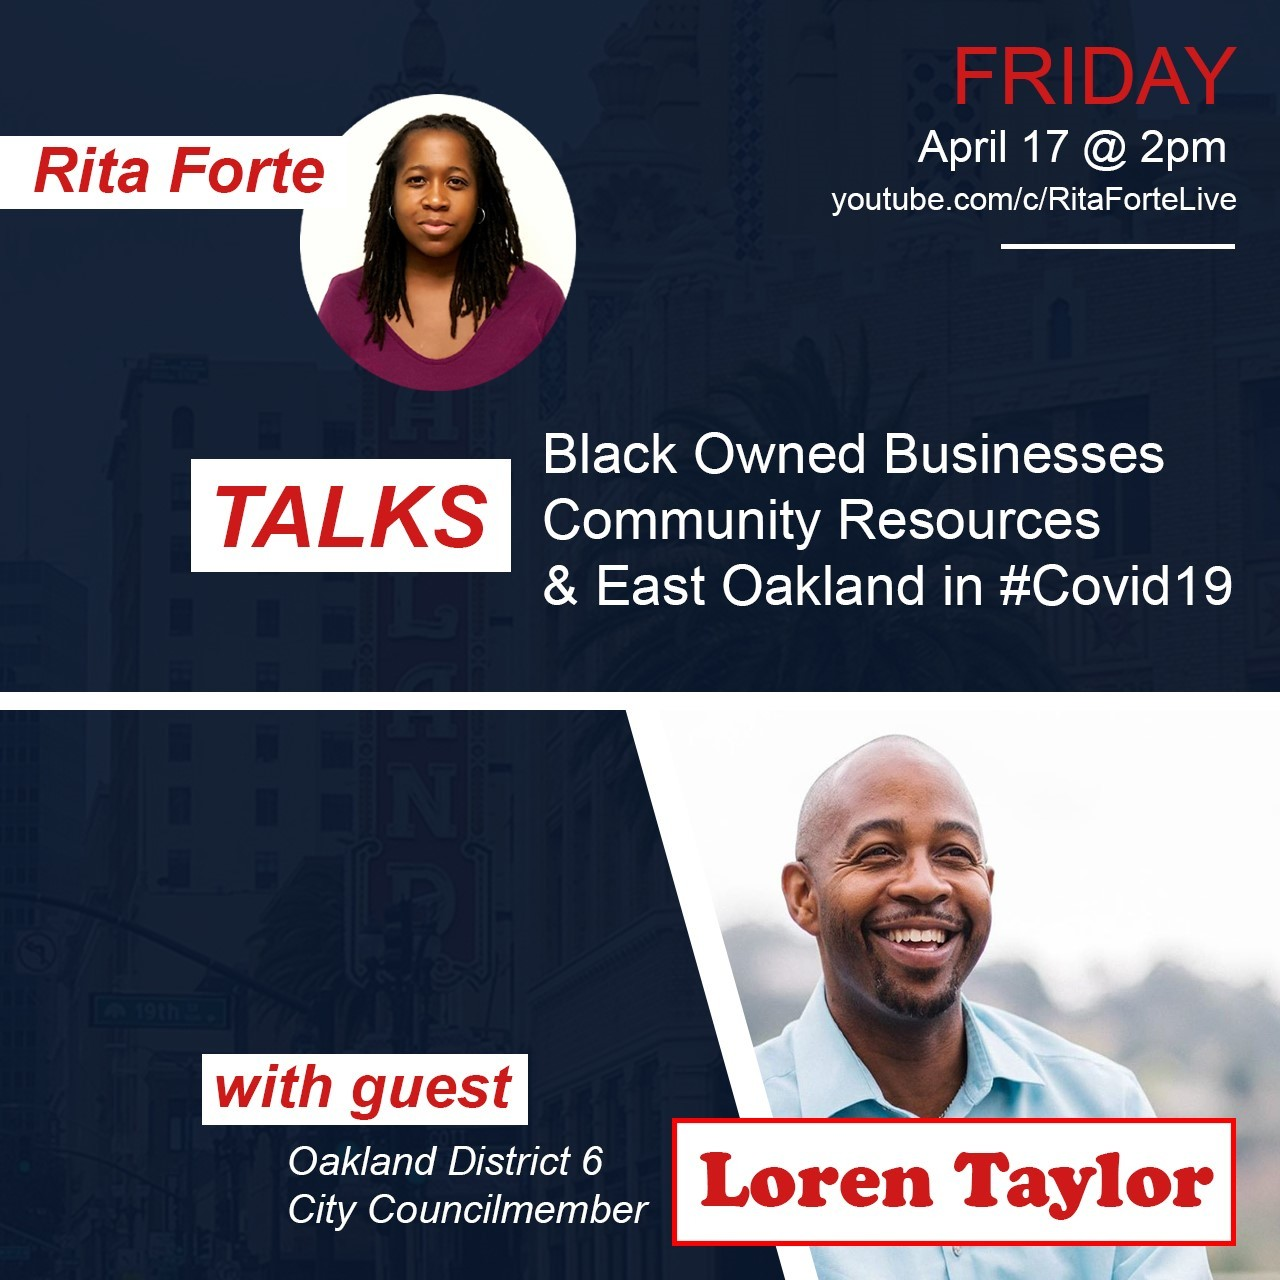 YouTube Live Stream Hosted by Rita Forte with Special Guest Loren Taylor in Discussion on Black Owned Businesses in East Oakland Image